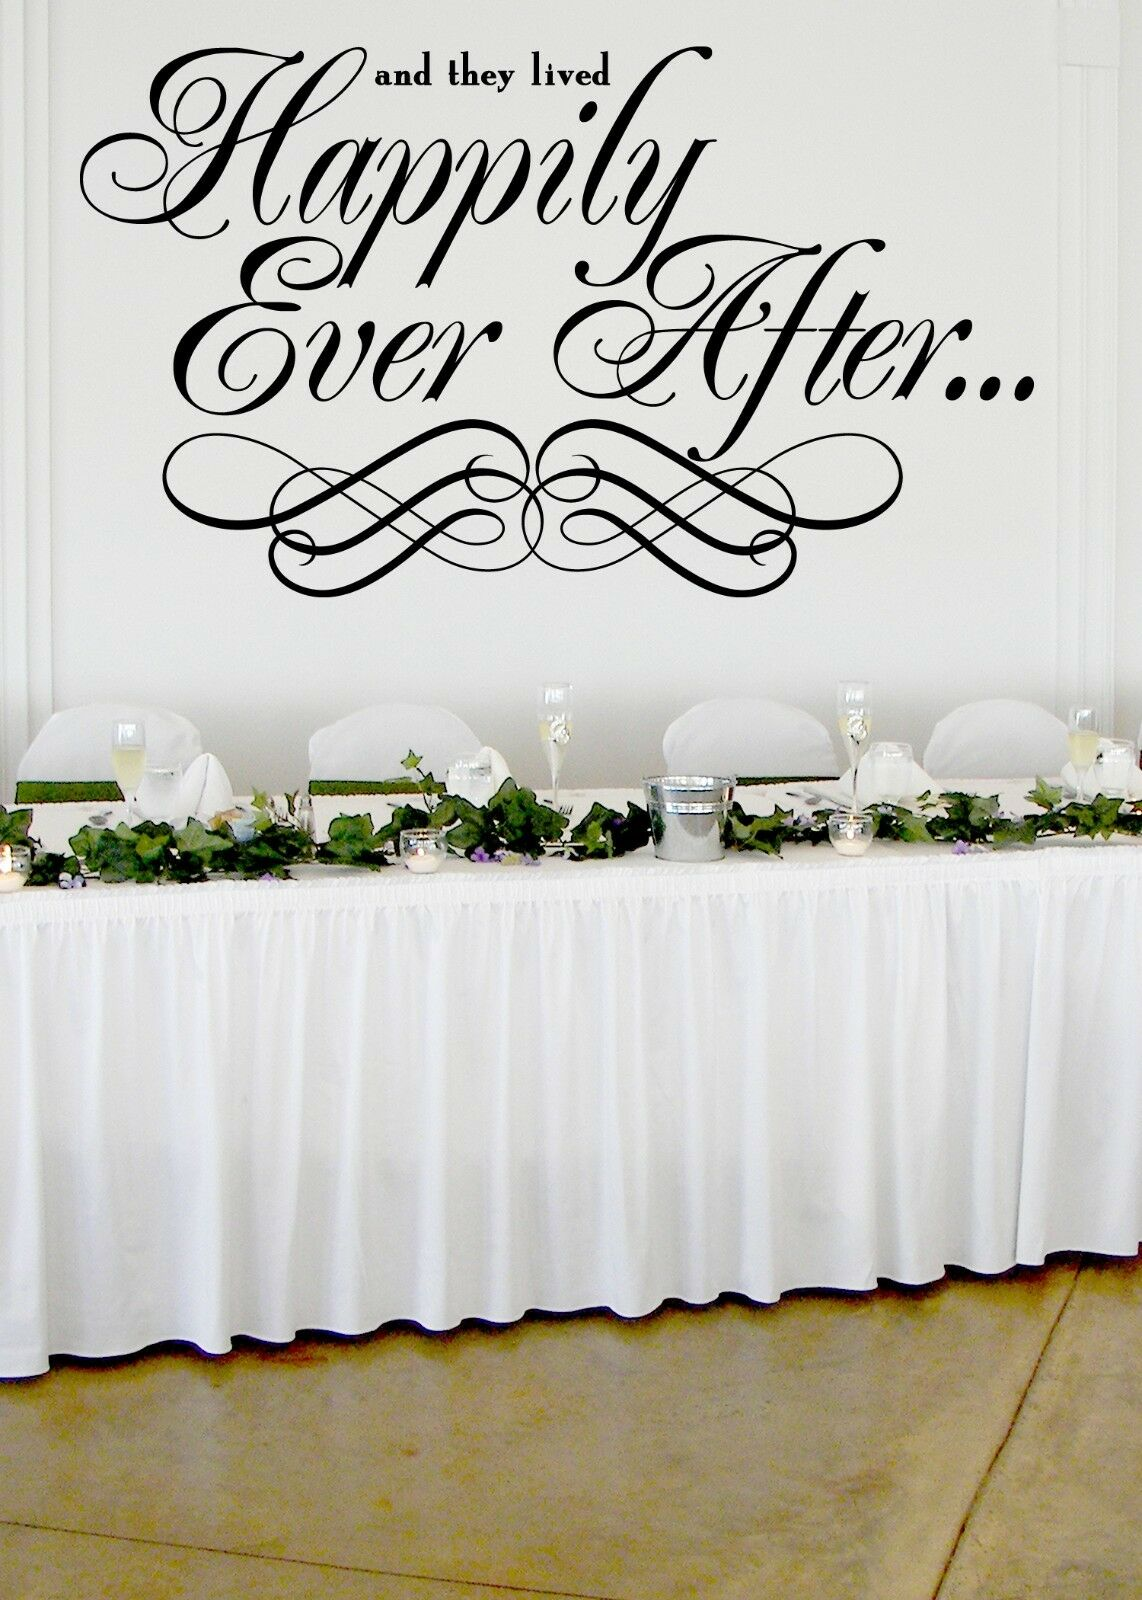 Happily Ever After Wedding Wall Decor Vinyl Autocollant Décalque 30 h X 50 w